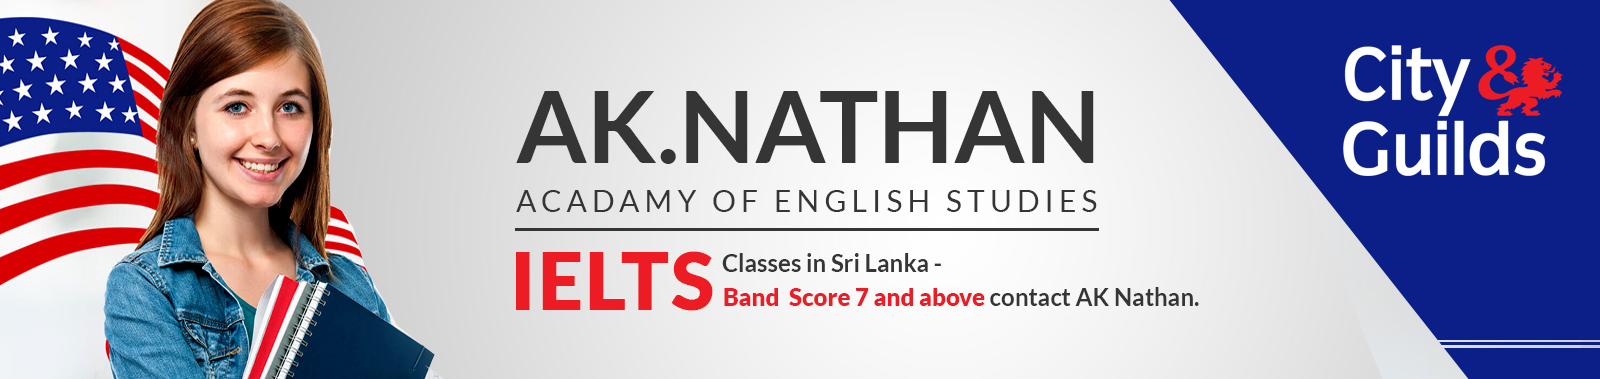 ielts classes in srilanka